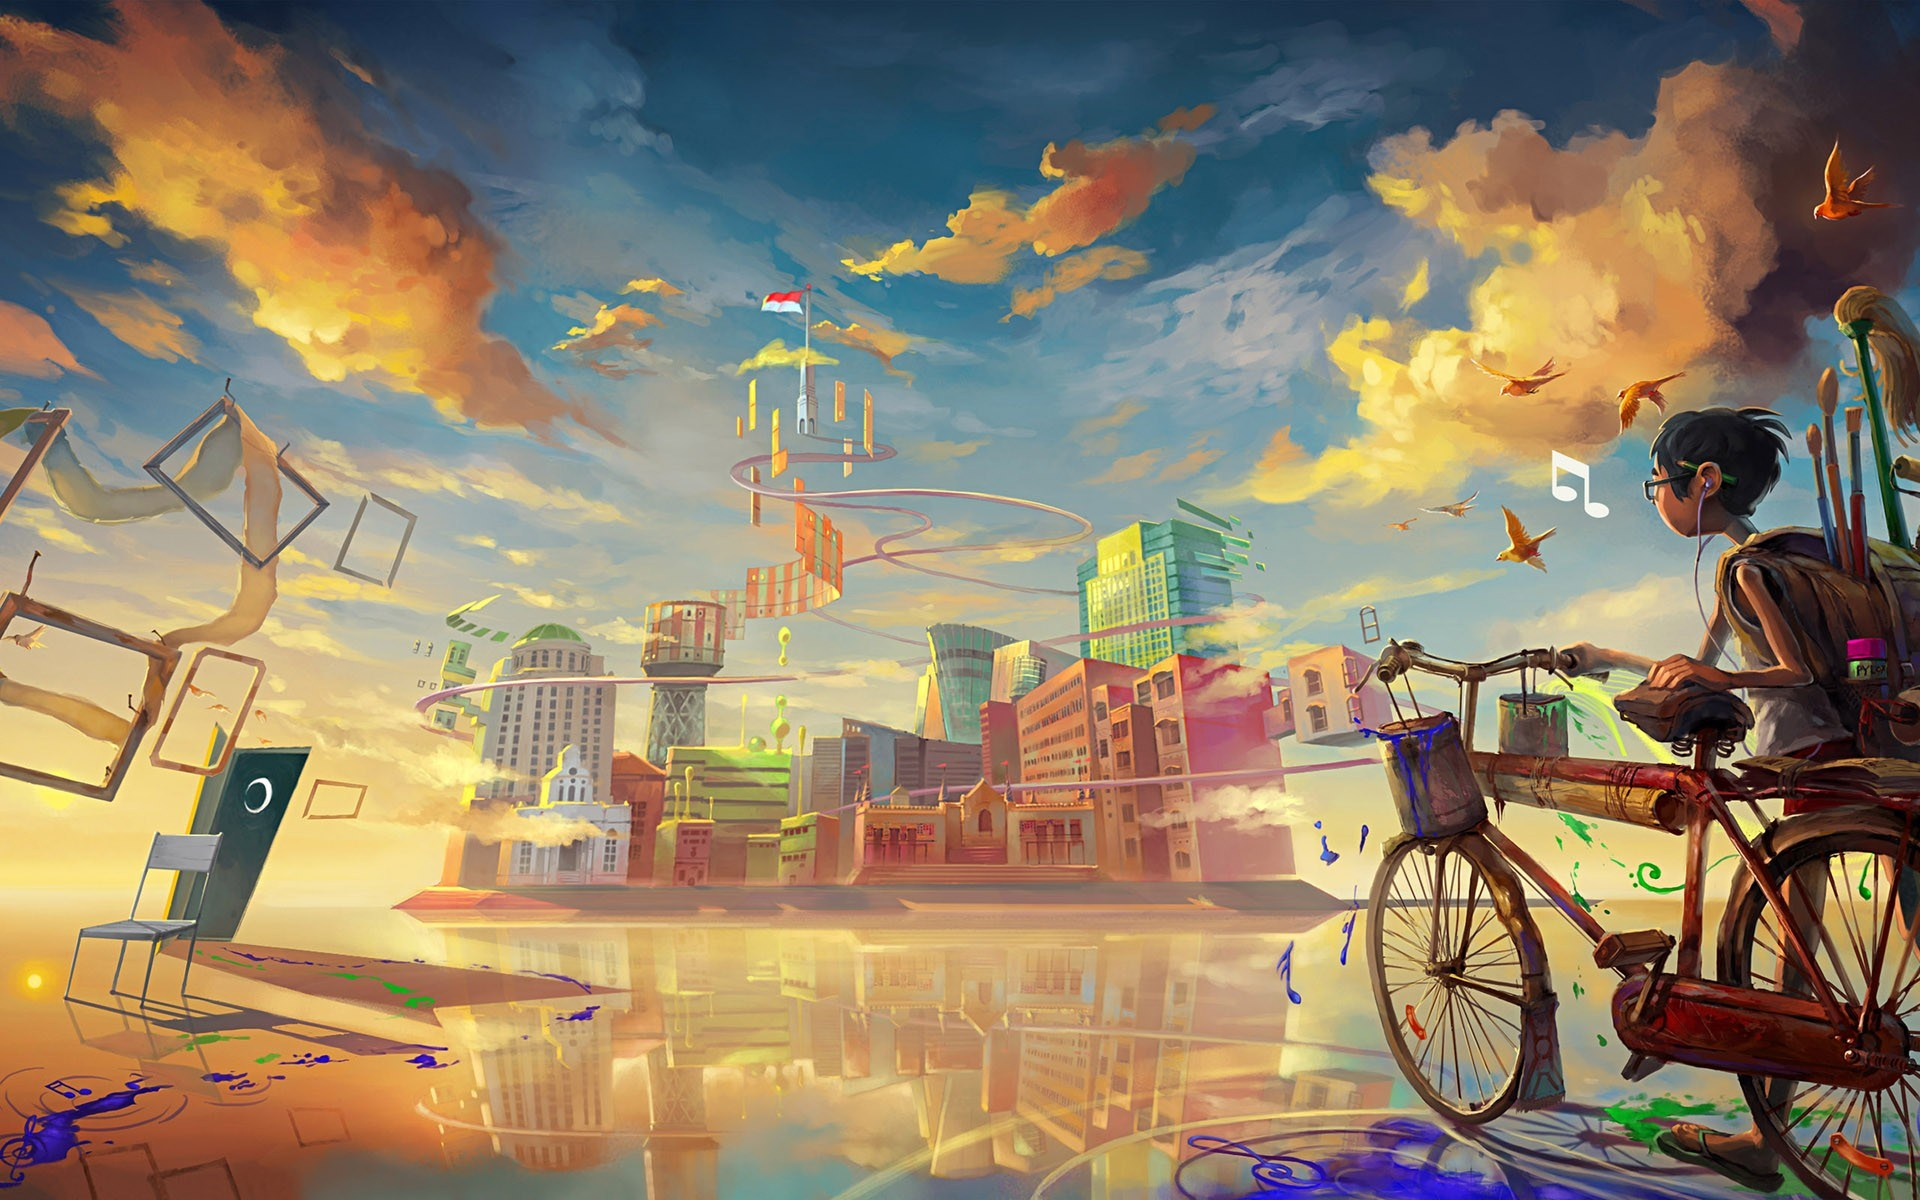 download cool anime city wallpaper 42579 1920x1200 px high